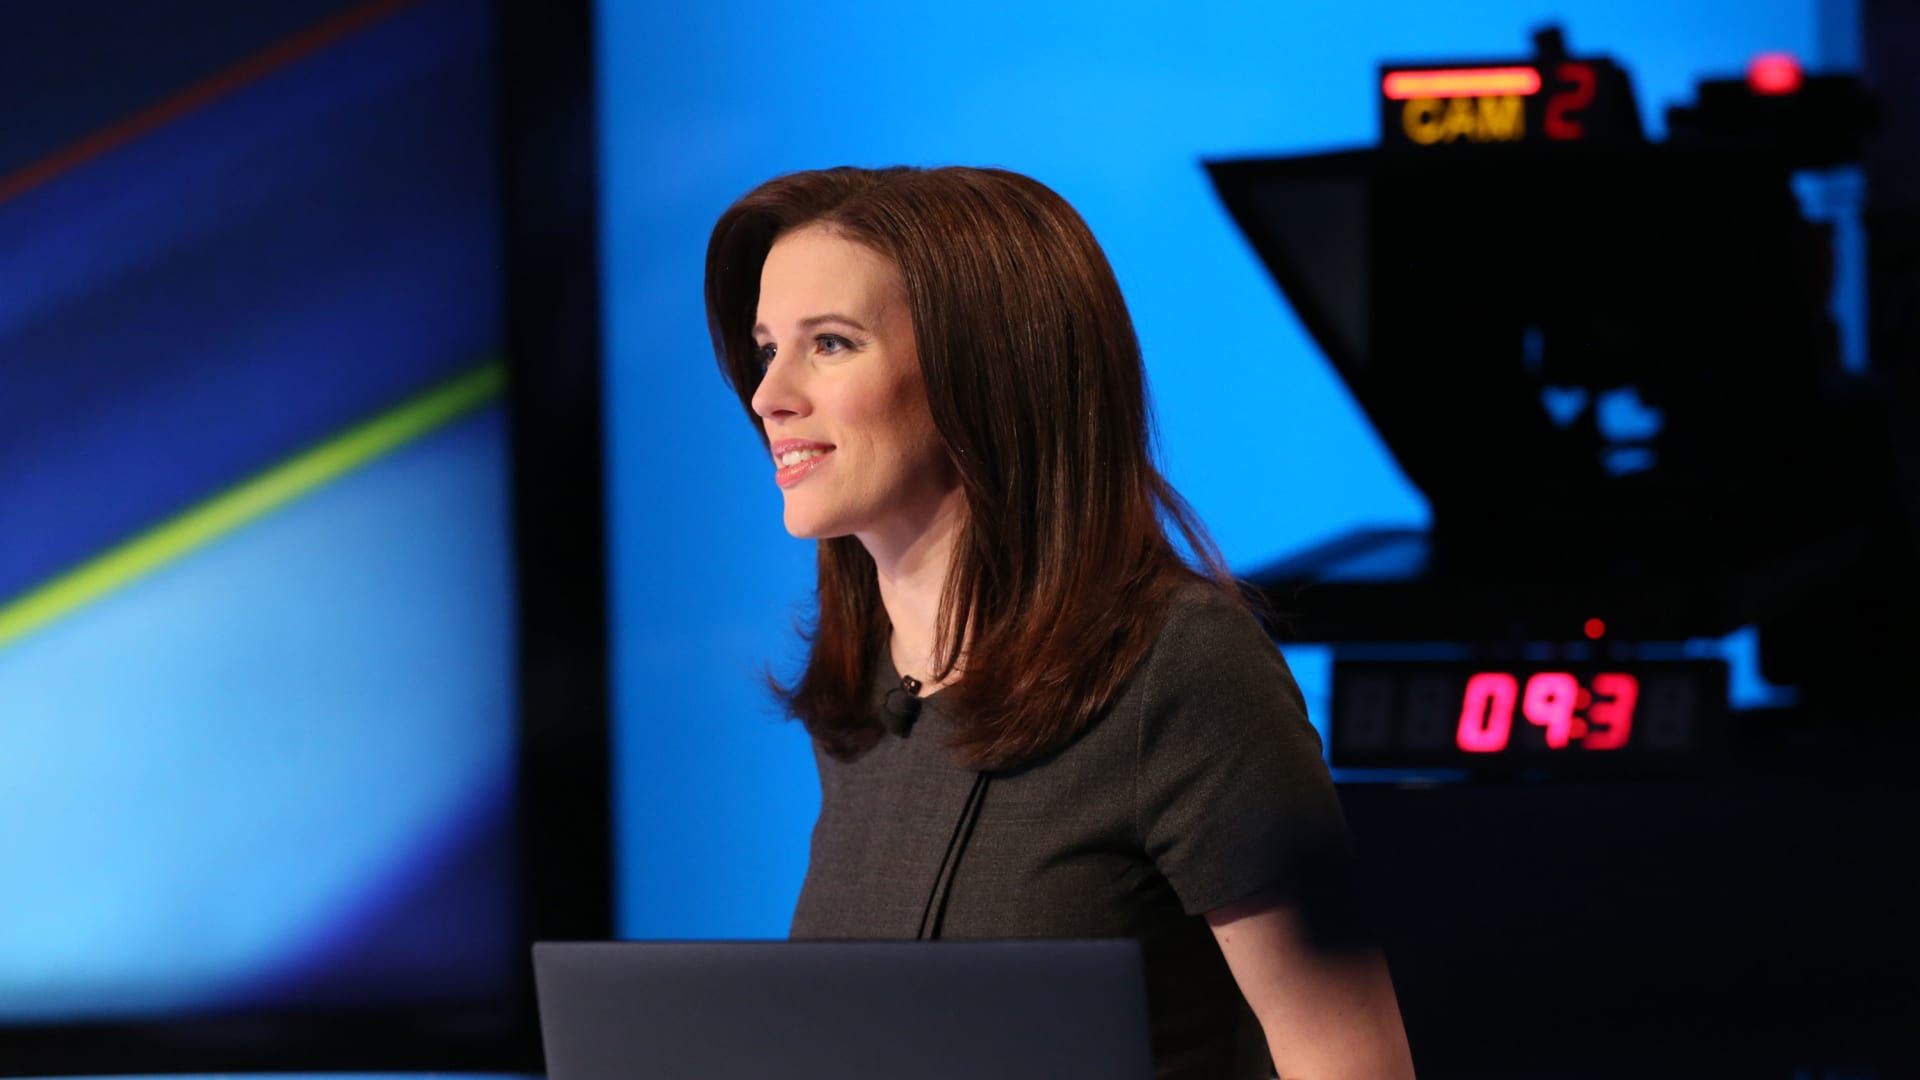 CNBC's Kelly Evans